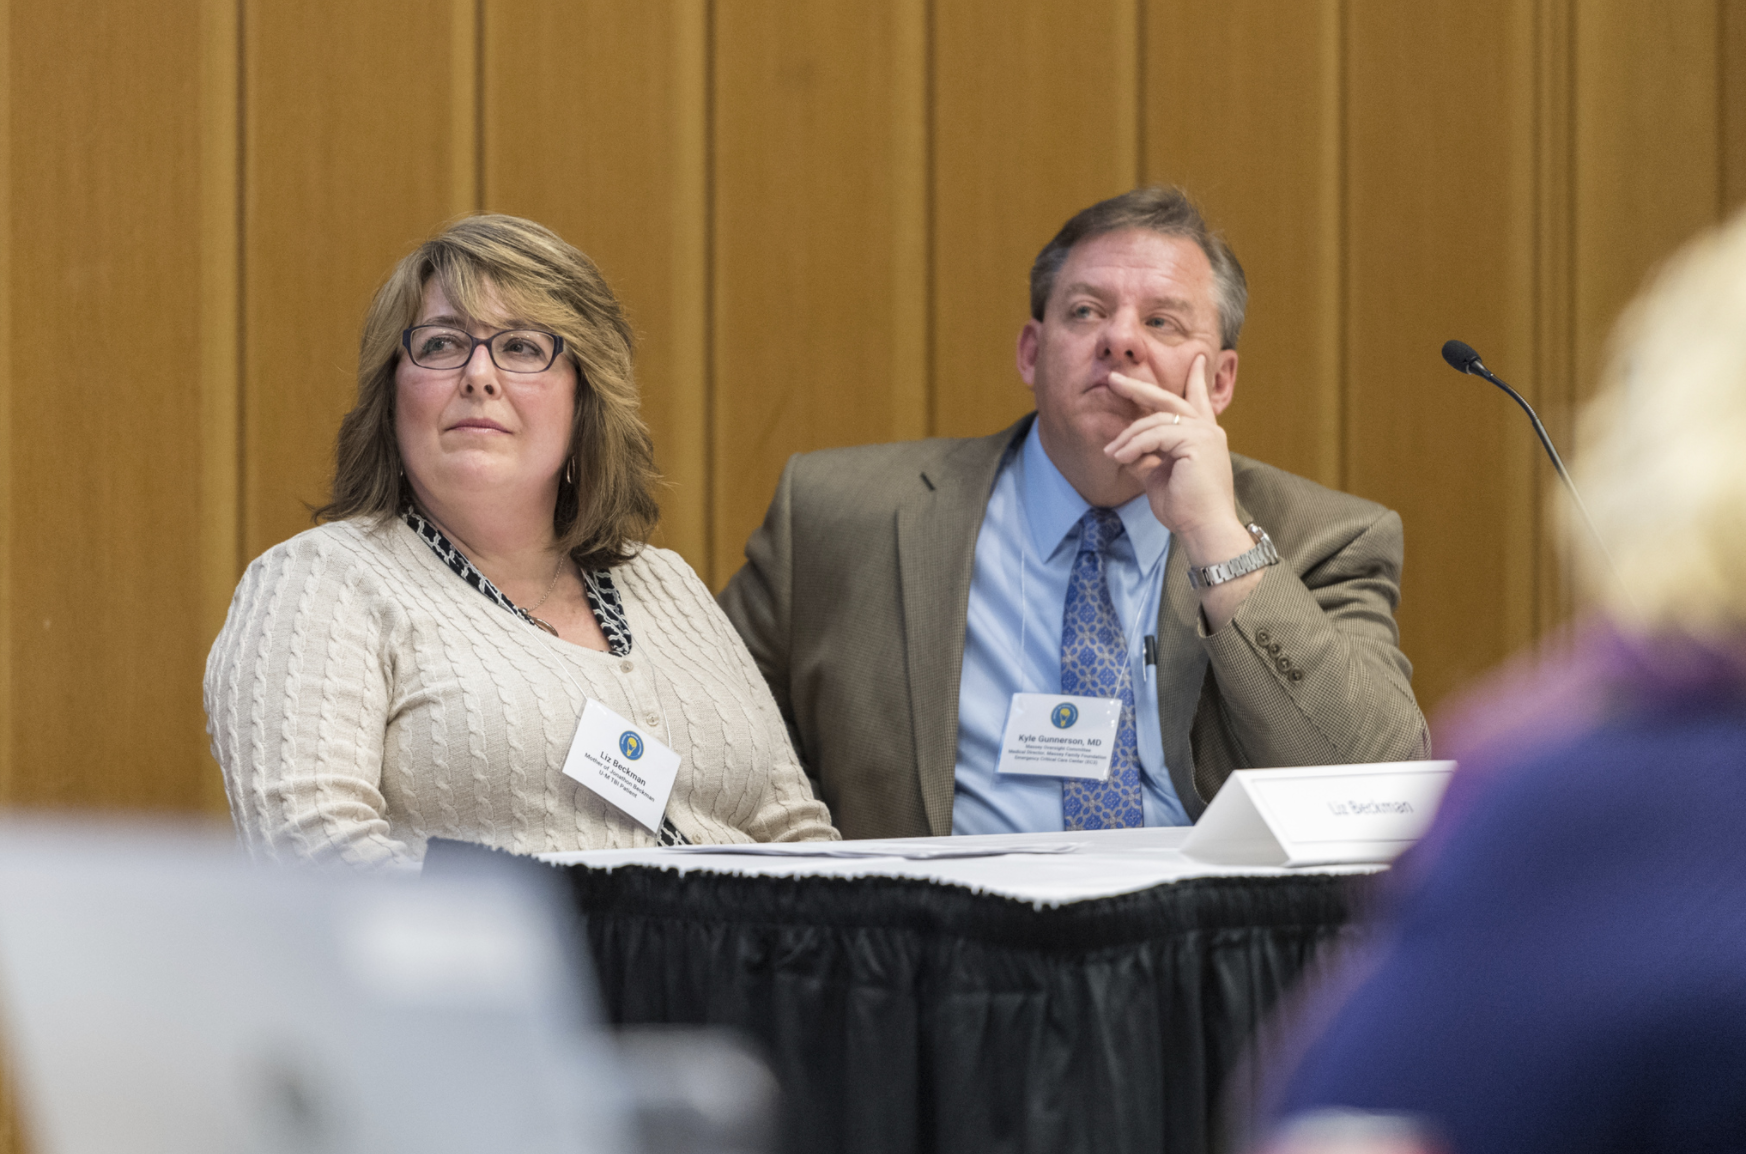 Liz Beckman sits with Kyle Gunnerson, MD, director of the EC3.